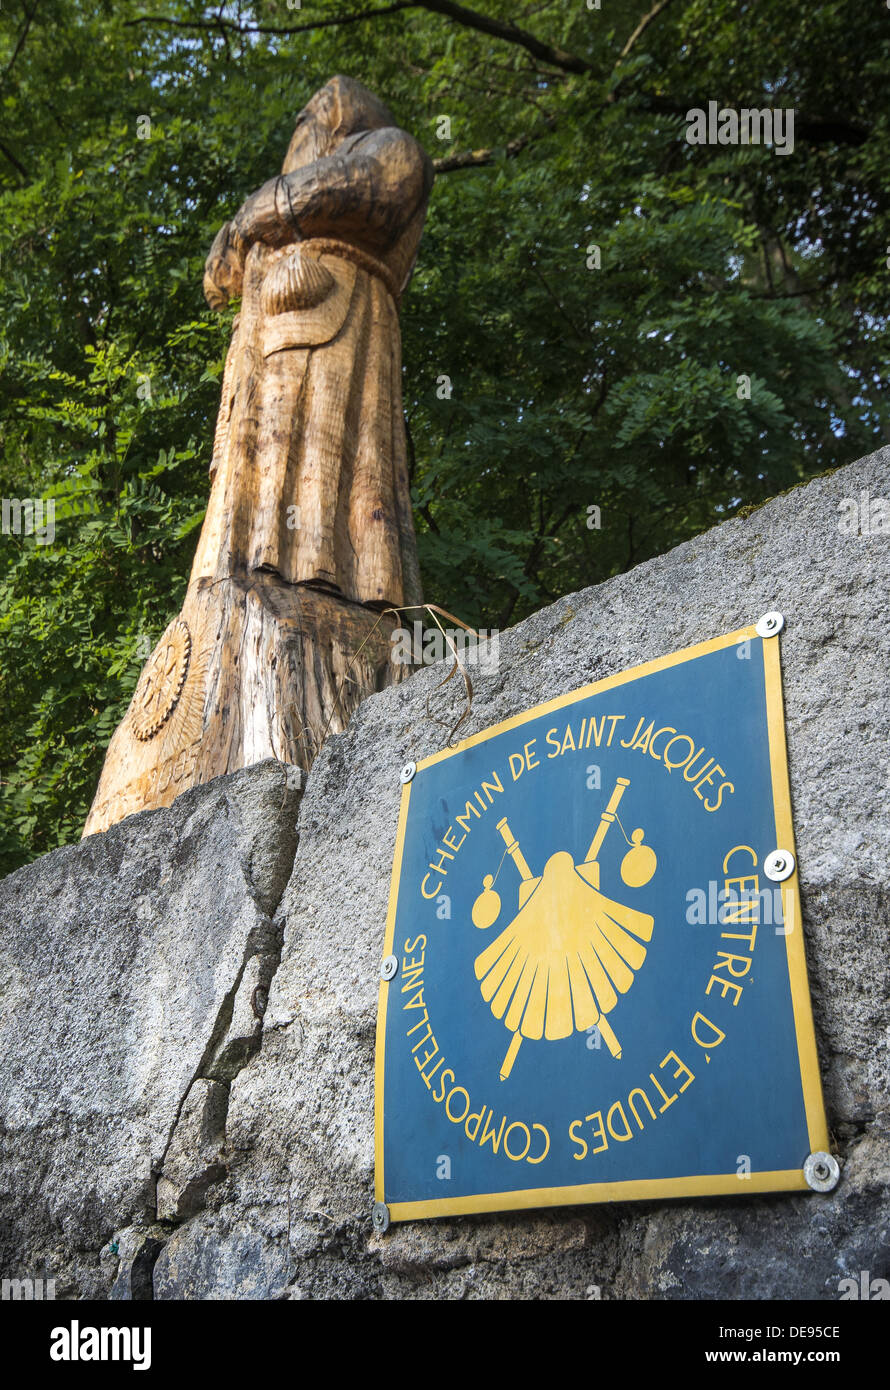 Large wooden statue of St James and waymarker walking out of Le Puy-en-Velay on the GR65 the way of St James in France - Stock Image